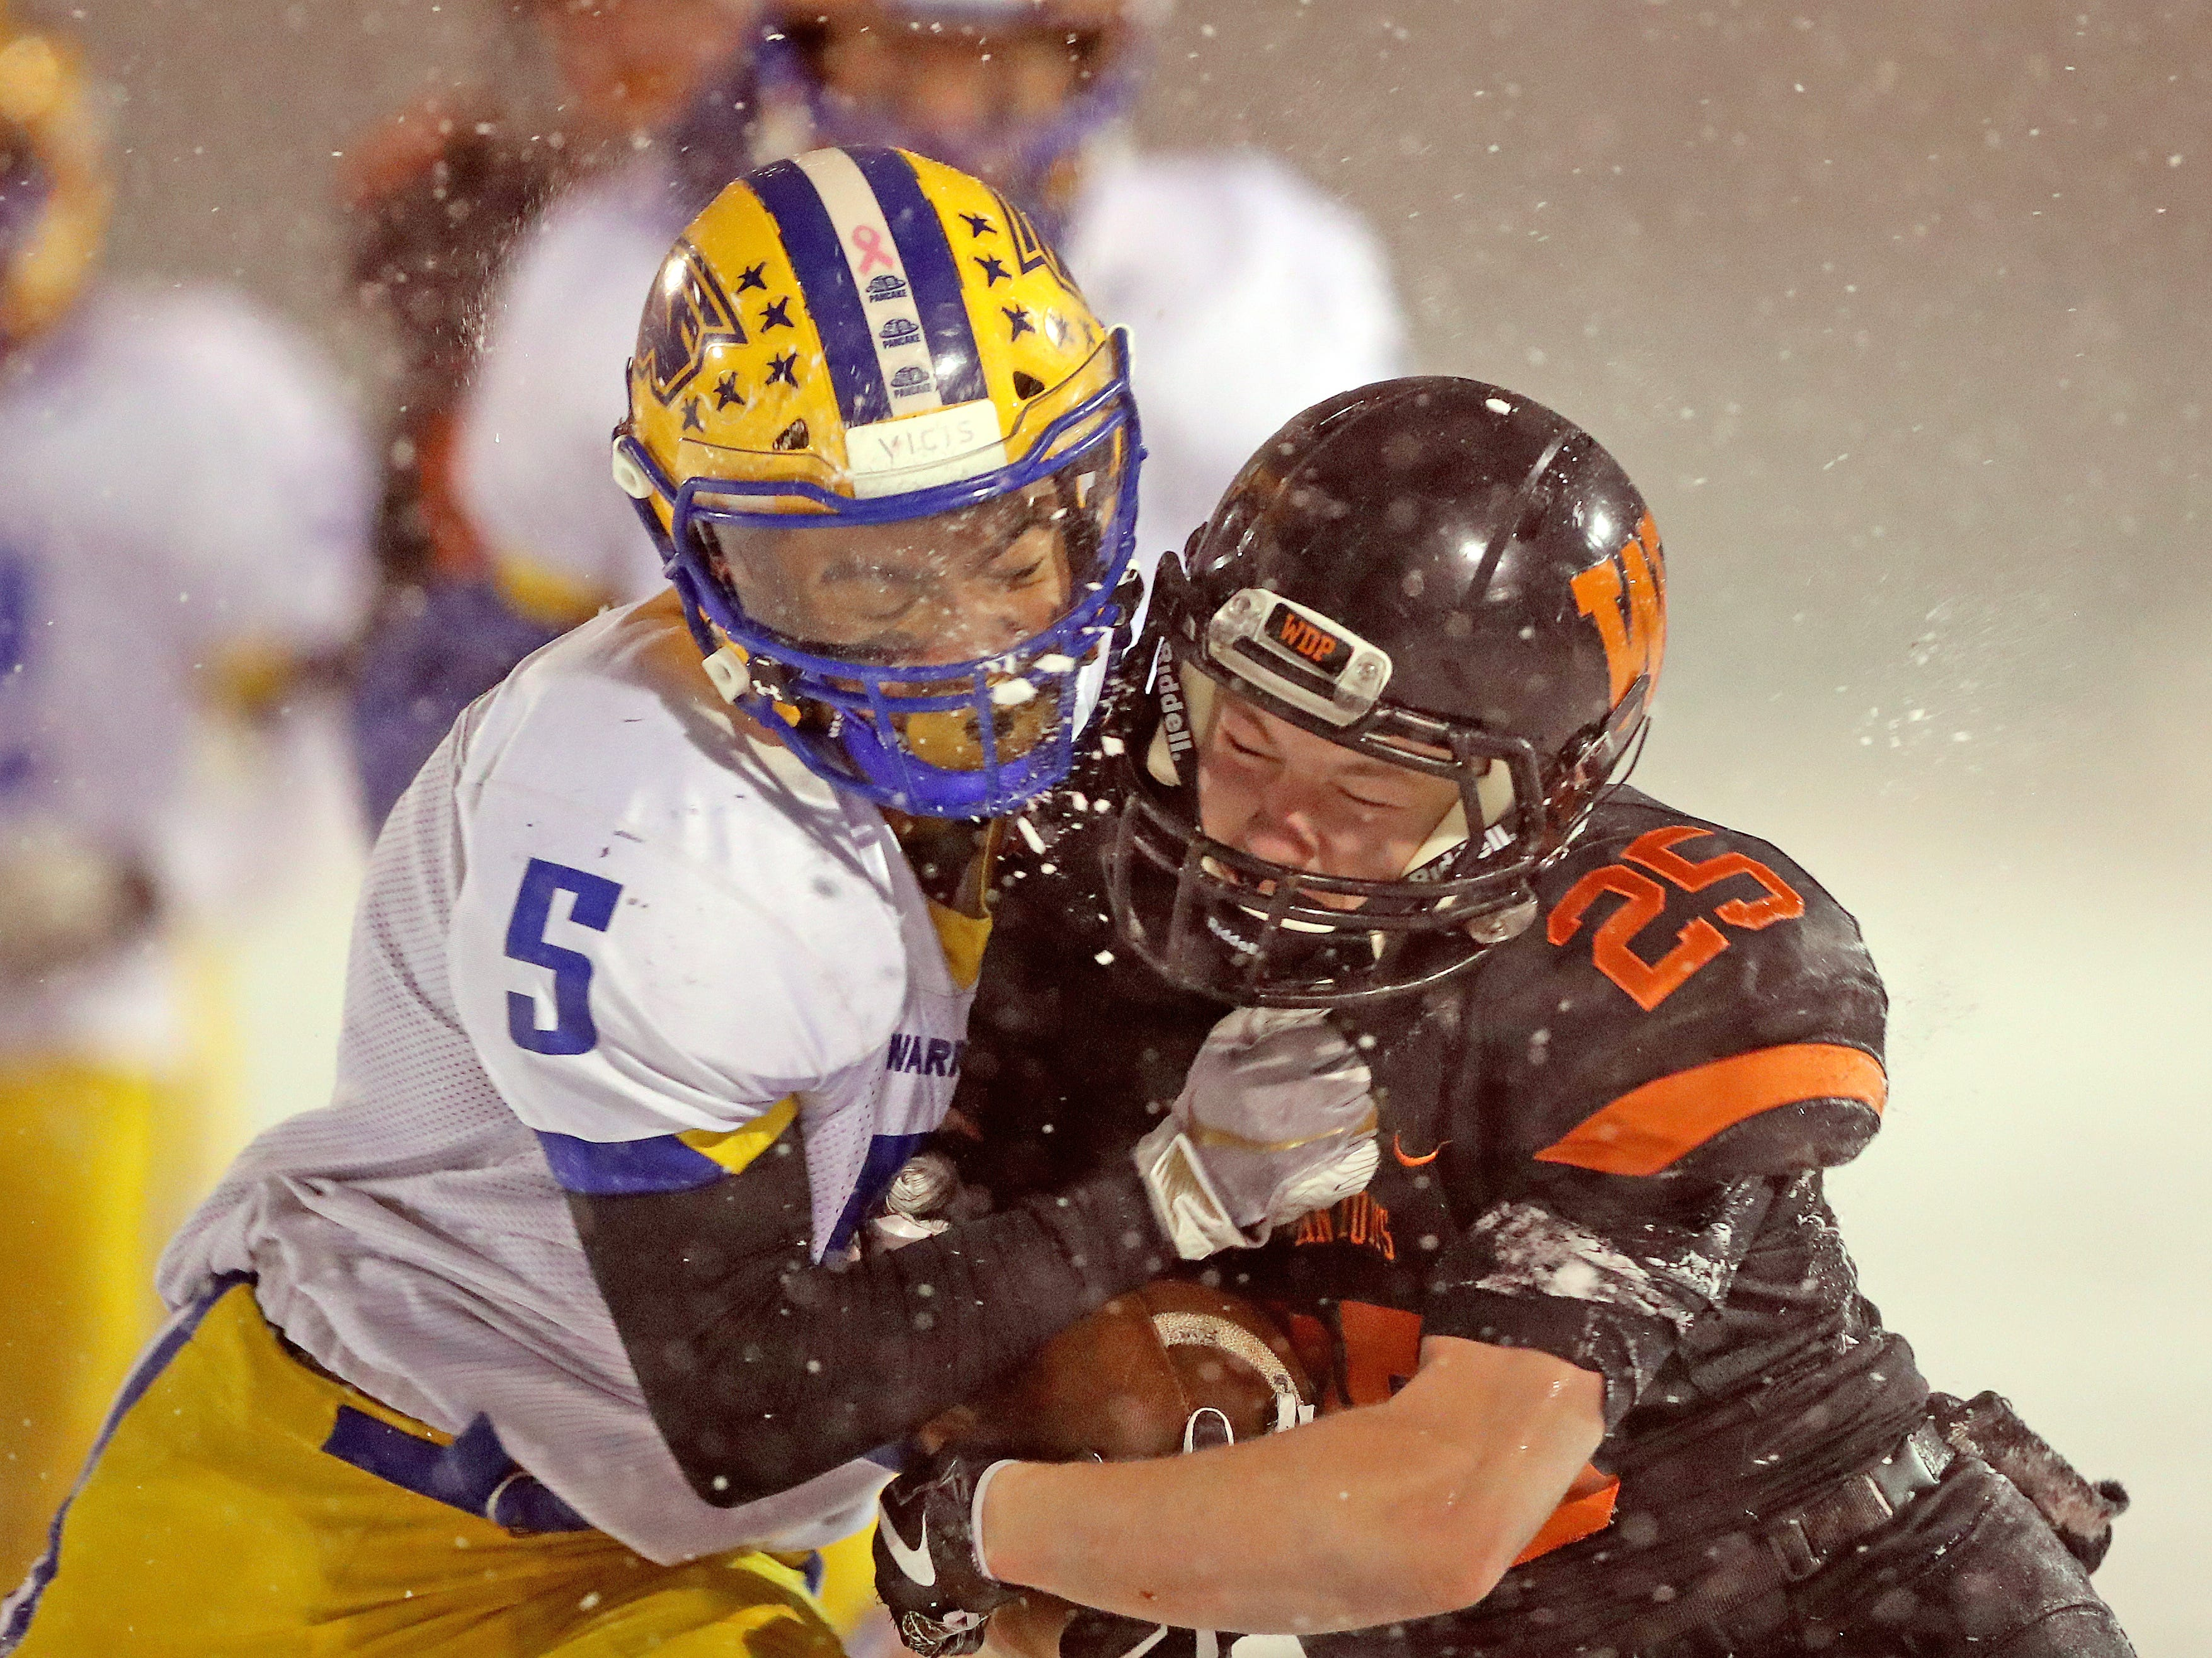 West De Pere's Kaden Kosobucki gets hit hard on a long run by Rice Lake's DeAirus Clerveaux in the Division 3 Level 4 WIAA playoffs Friday, November 9, 2018 at DC Everest in Weston, Wis.